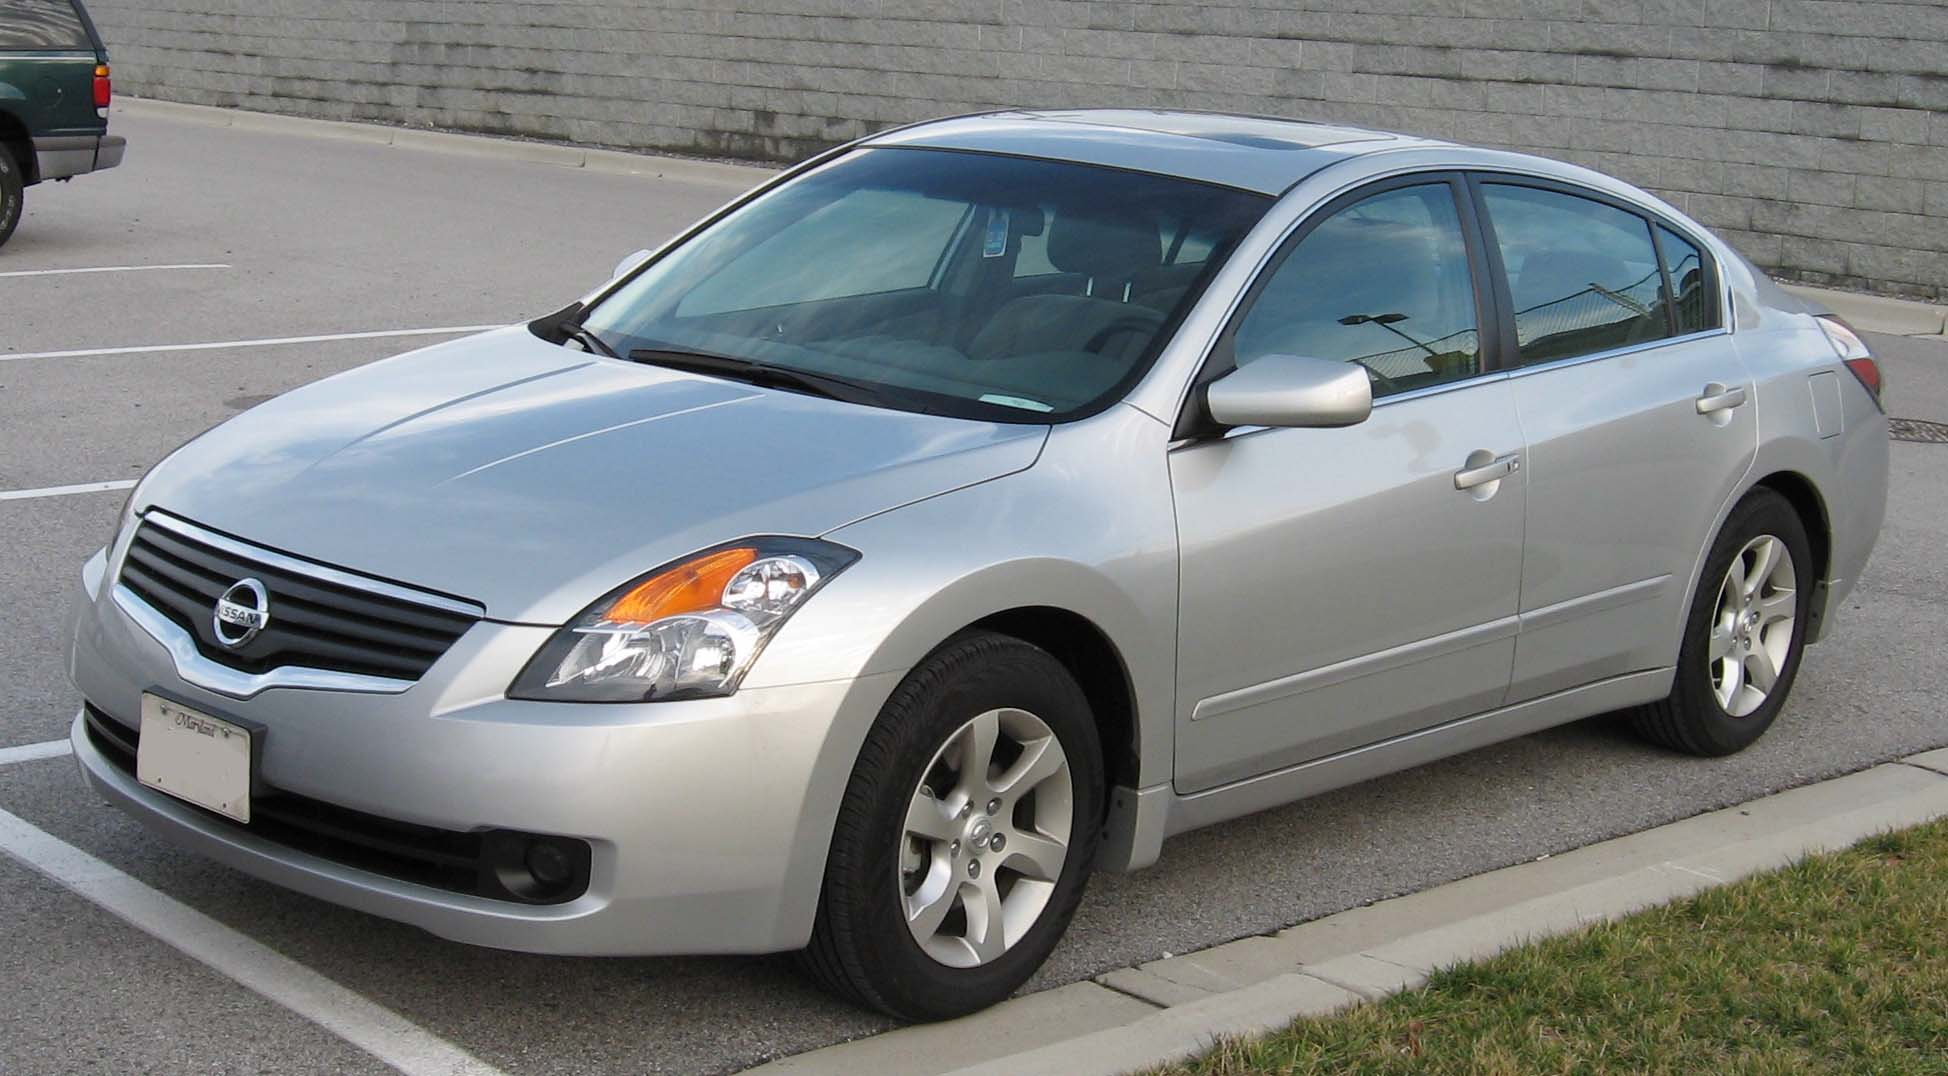 File:2007-Nissan-Altima-2.5S-1.jpg - Wikimedia Commons